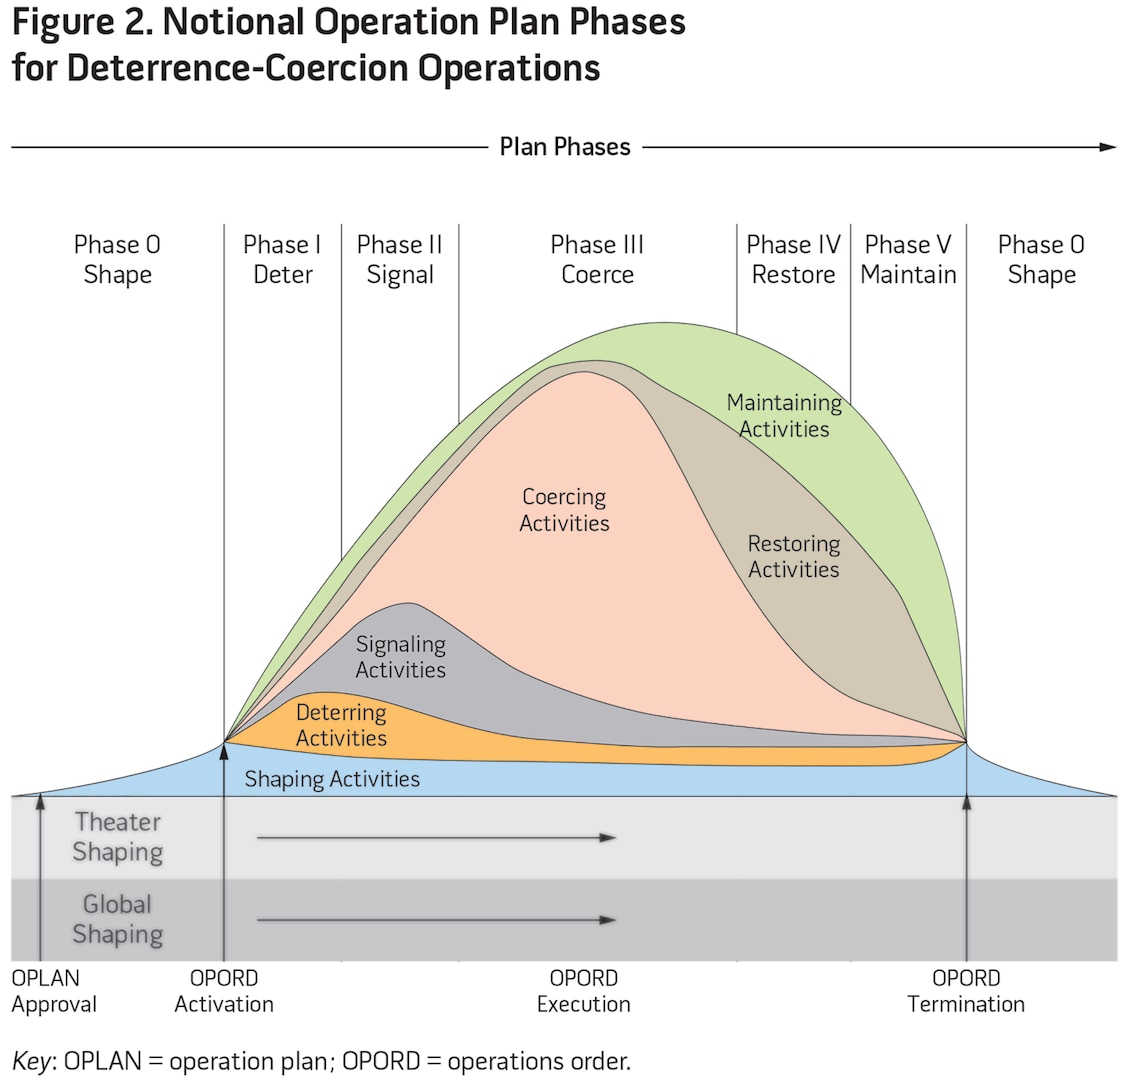 Figure 2. Notional Operation Plan Phases for Deterrence-Coercion Operations